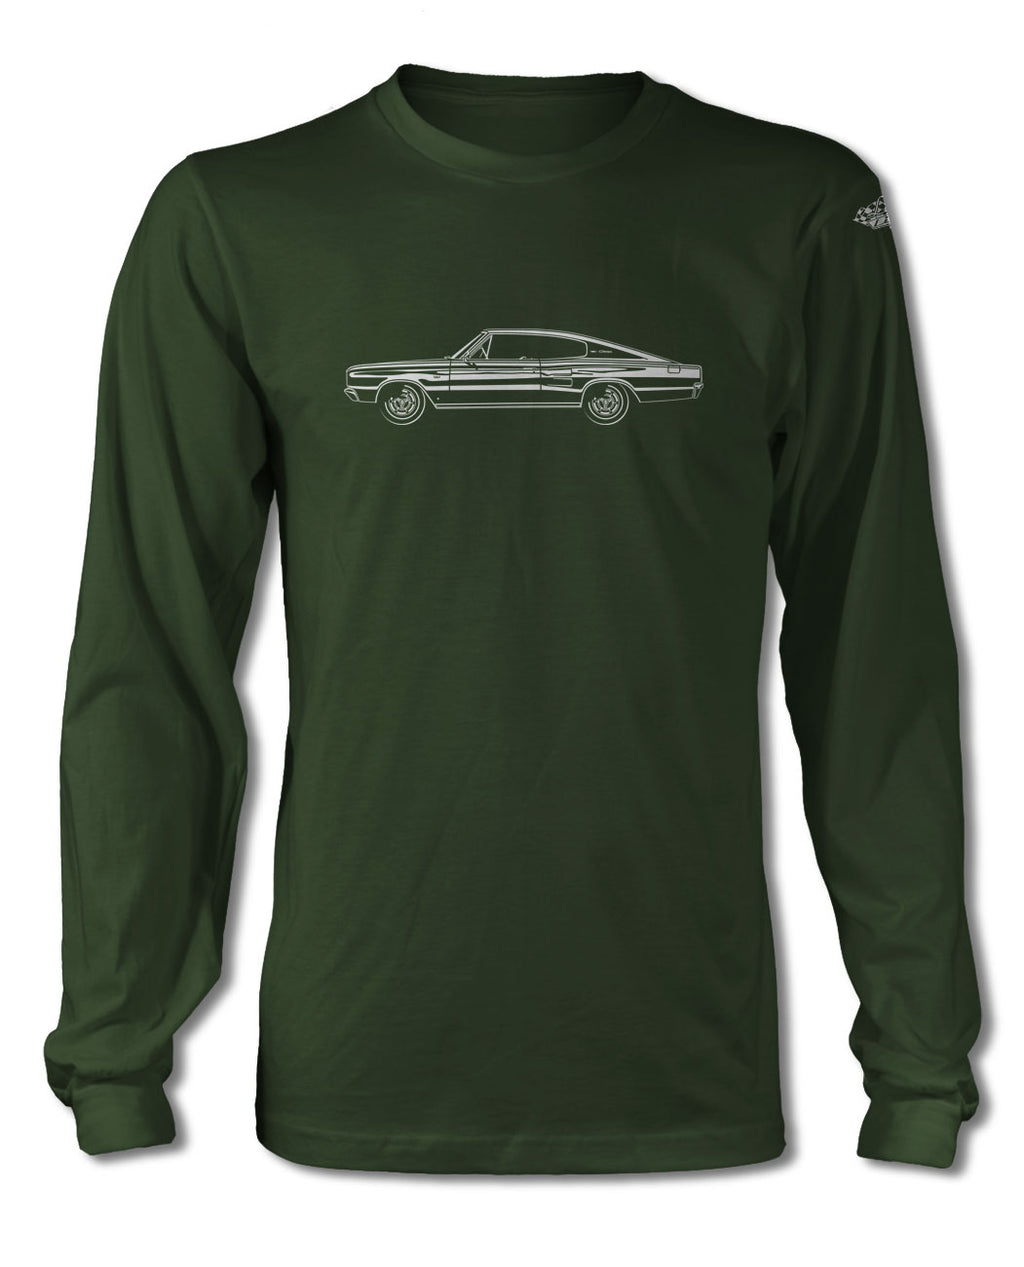 1966 Dodge Charger Coupe T-Shirt - Long Sleeves - Side View